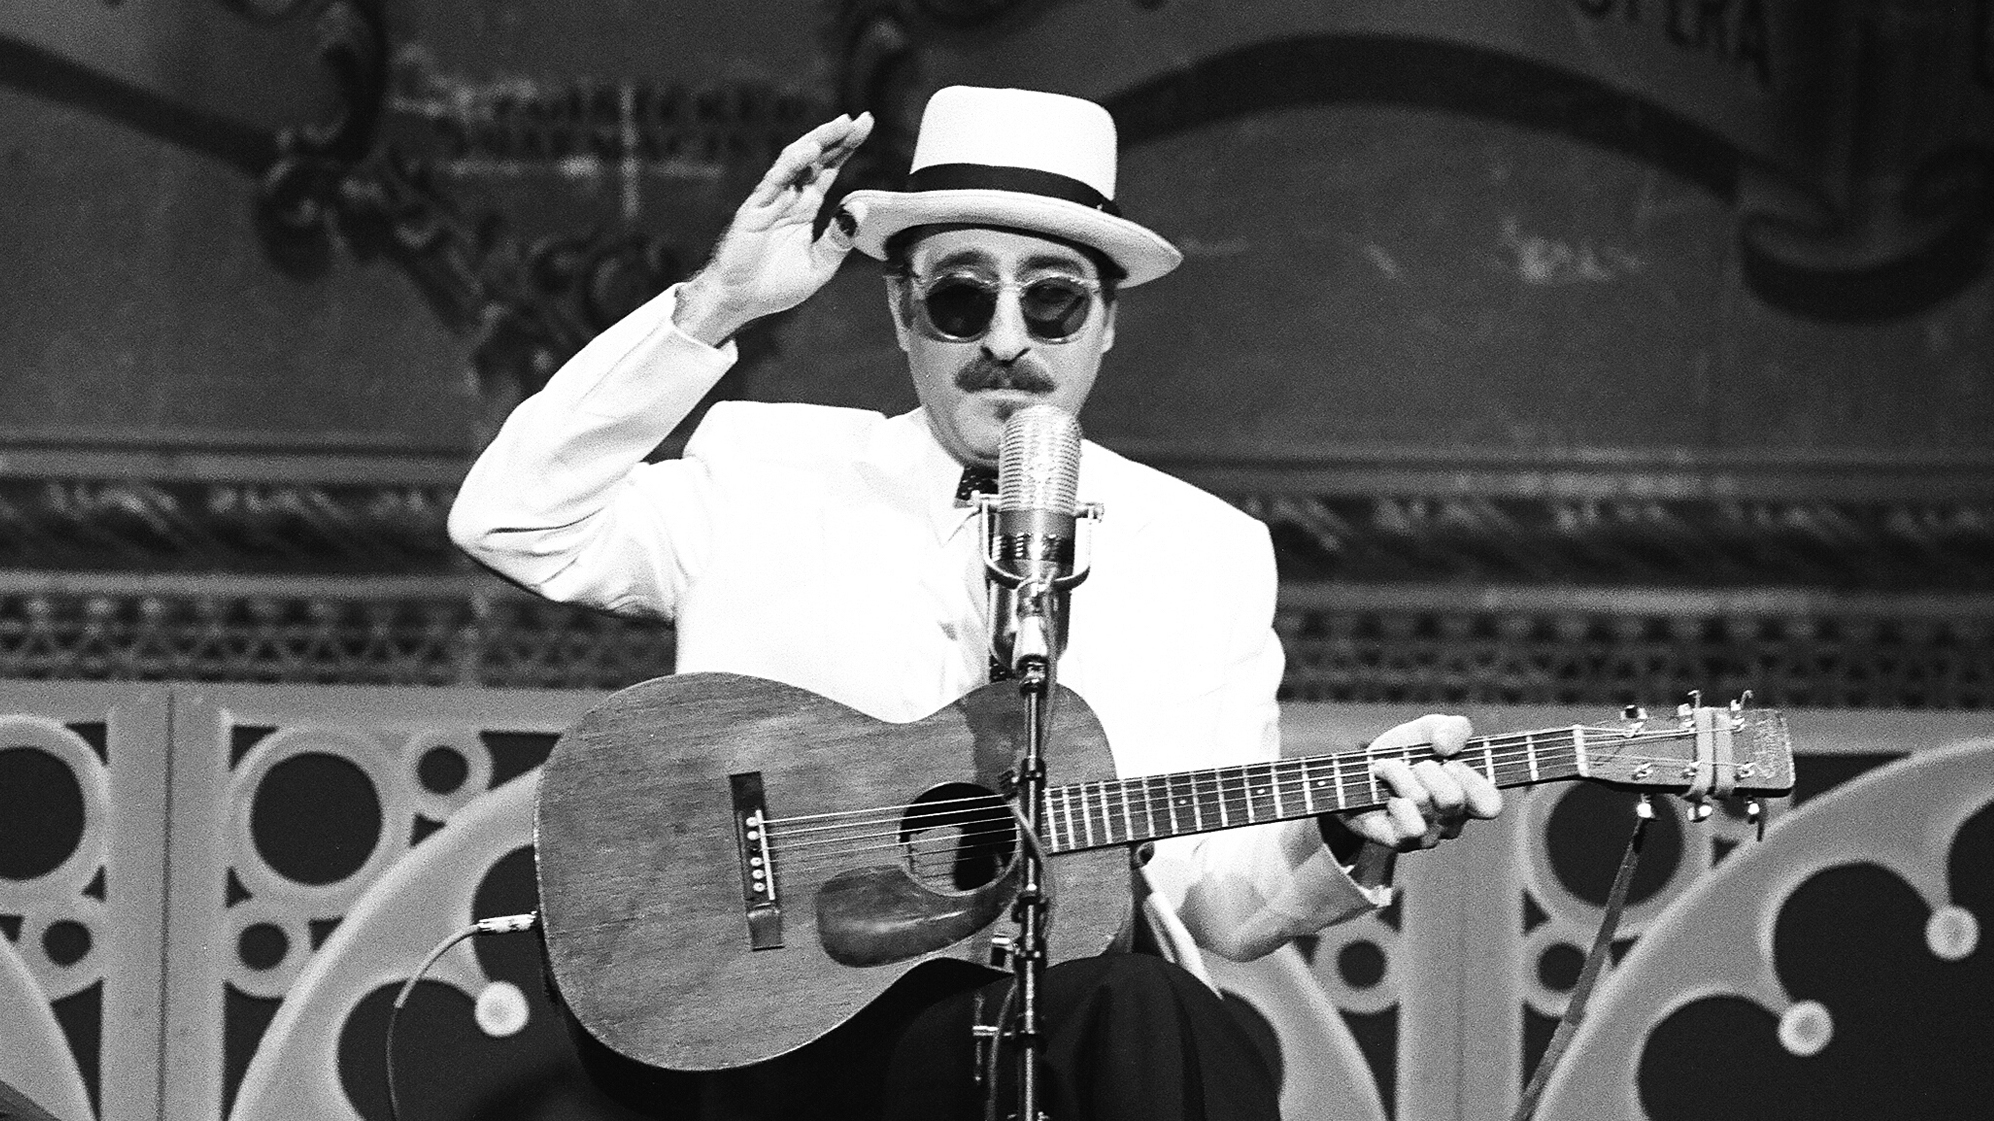 Leon Redbone, An Unusual Singer From A Bygone Era, Has Died